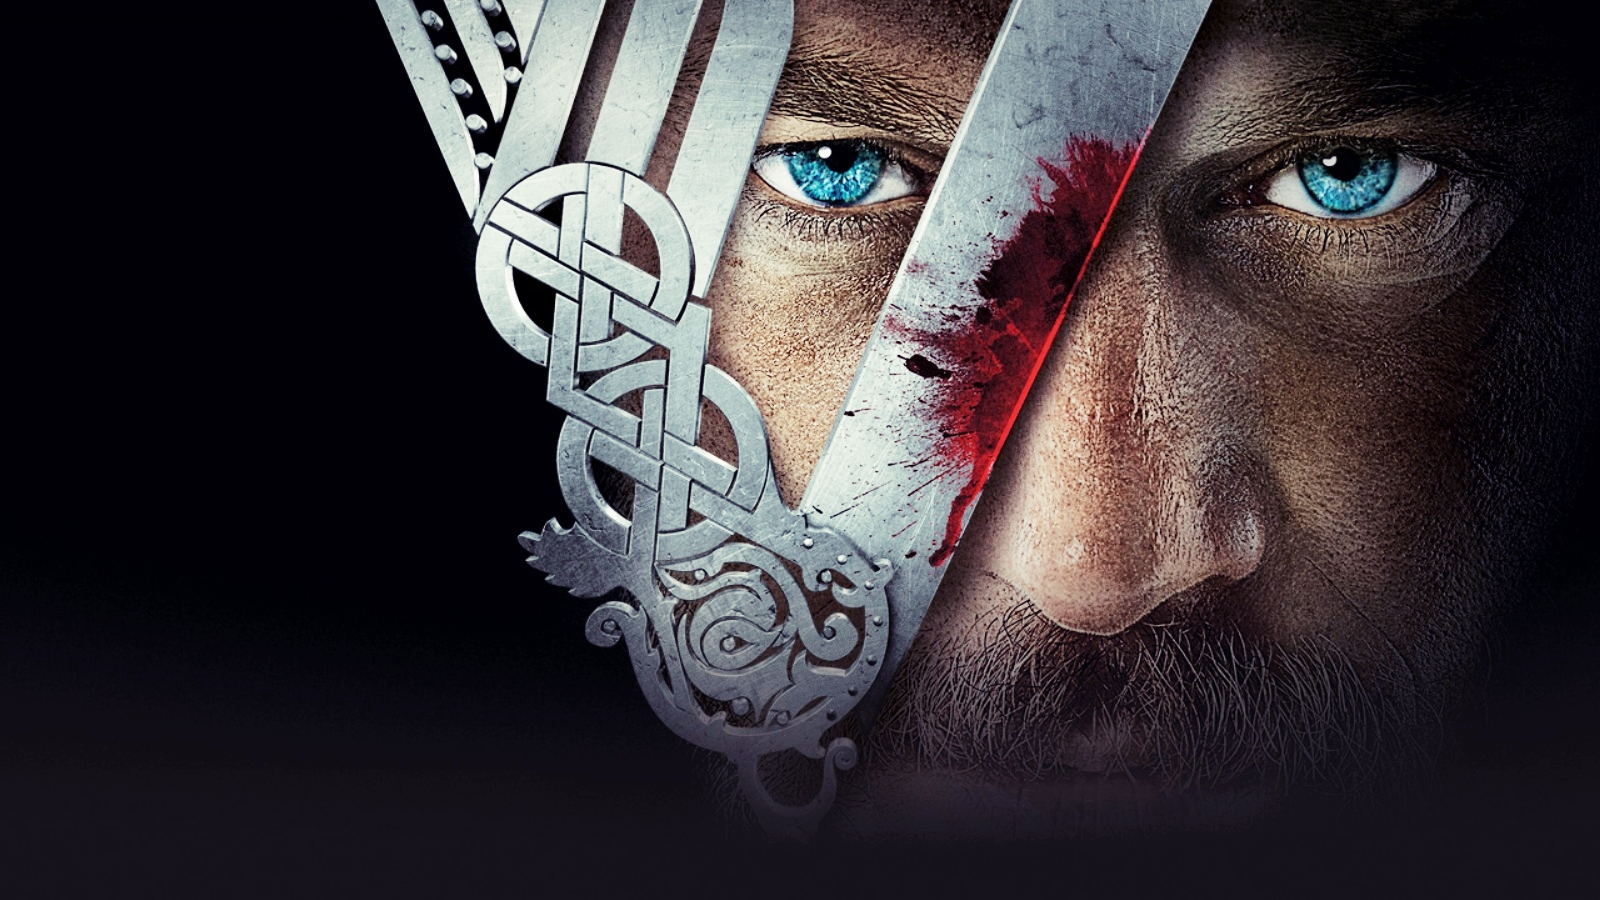 Vikings Wallpaper and Background | 1600x900 | ID:391553